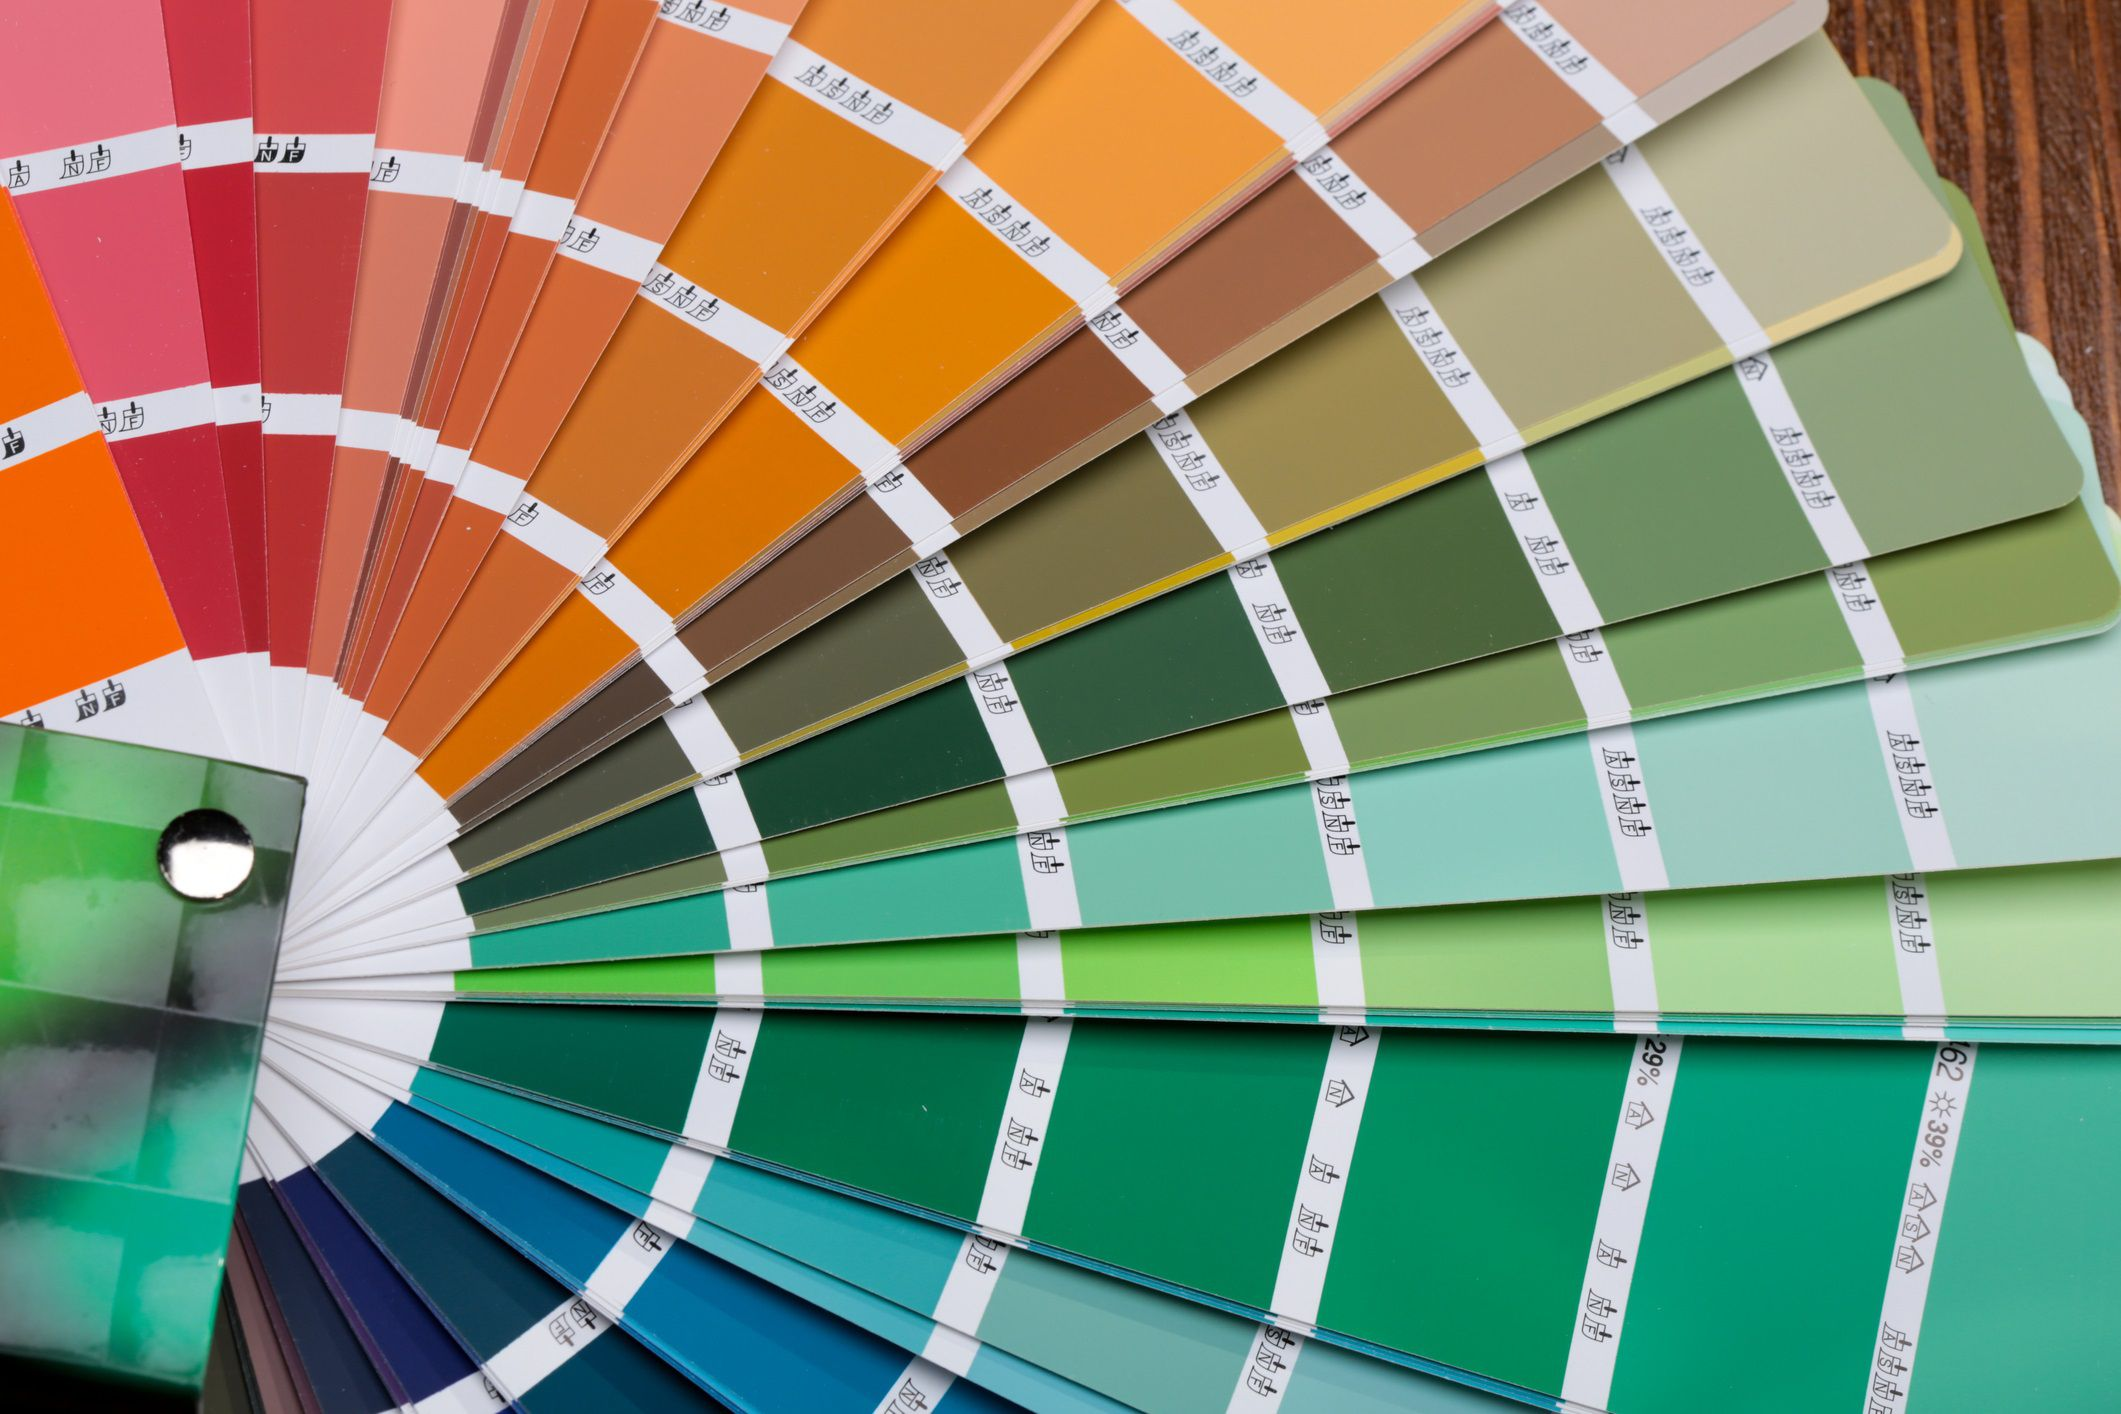 Before You Buy Pantone Color Guides